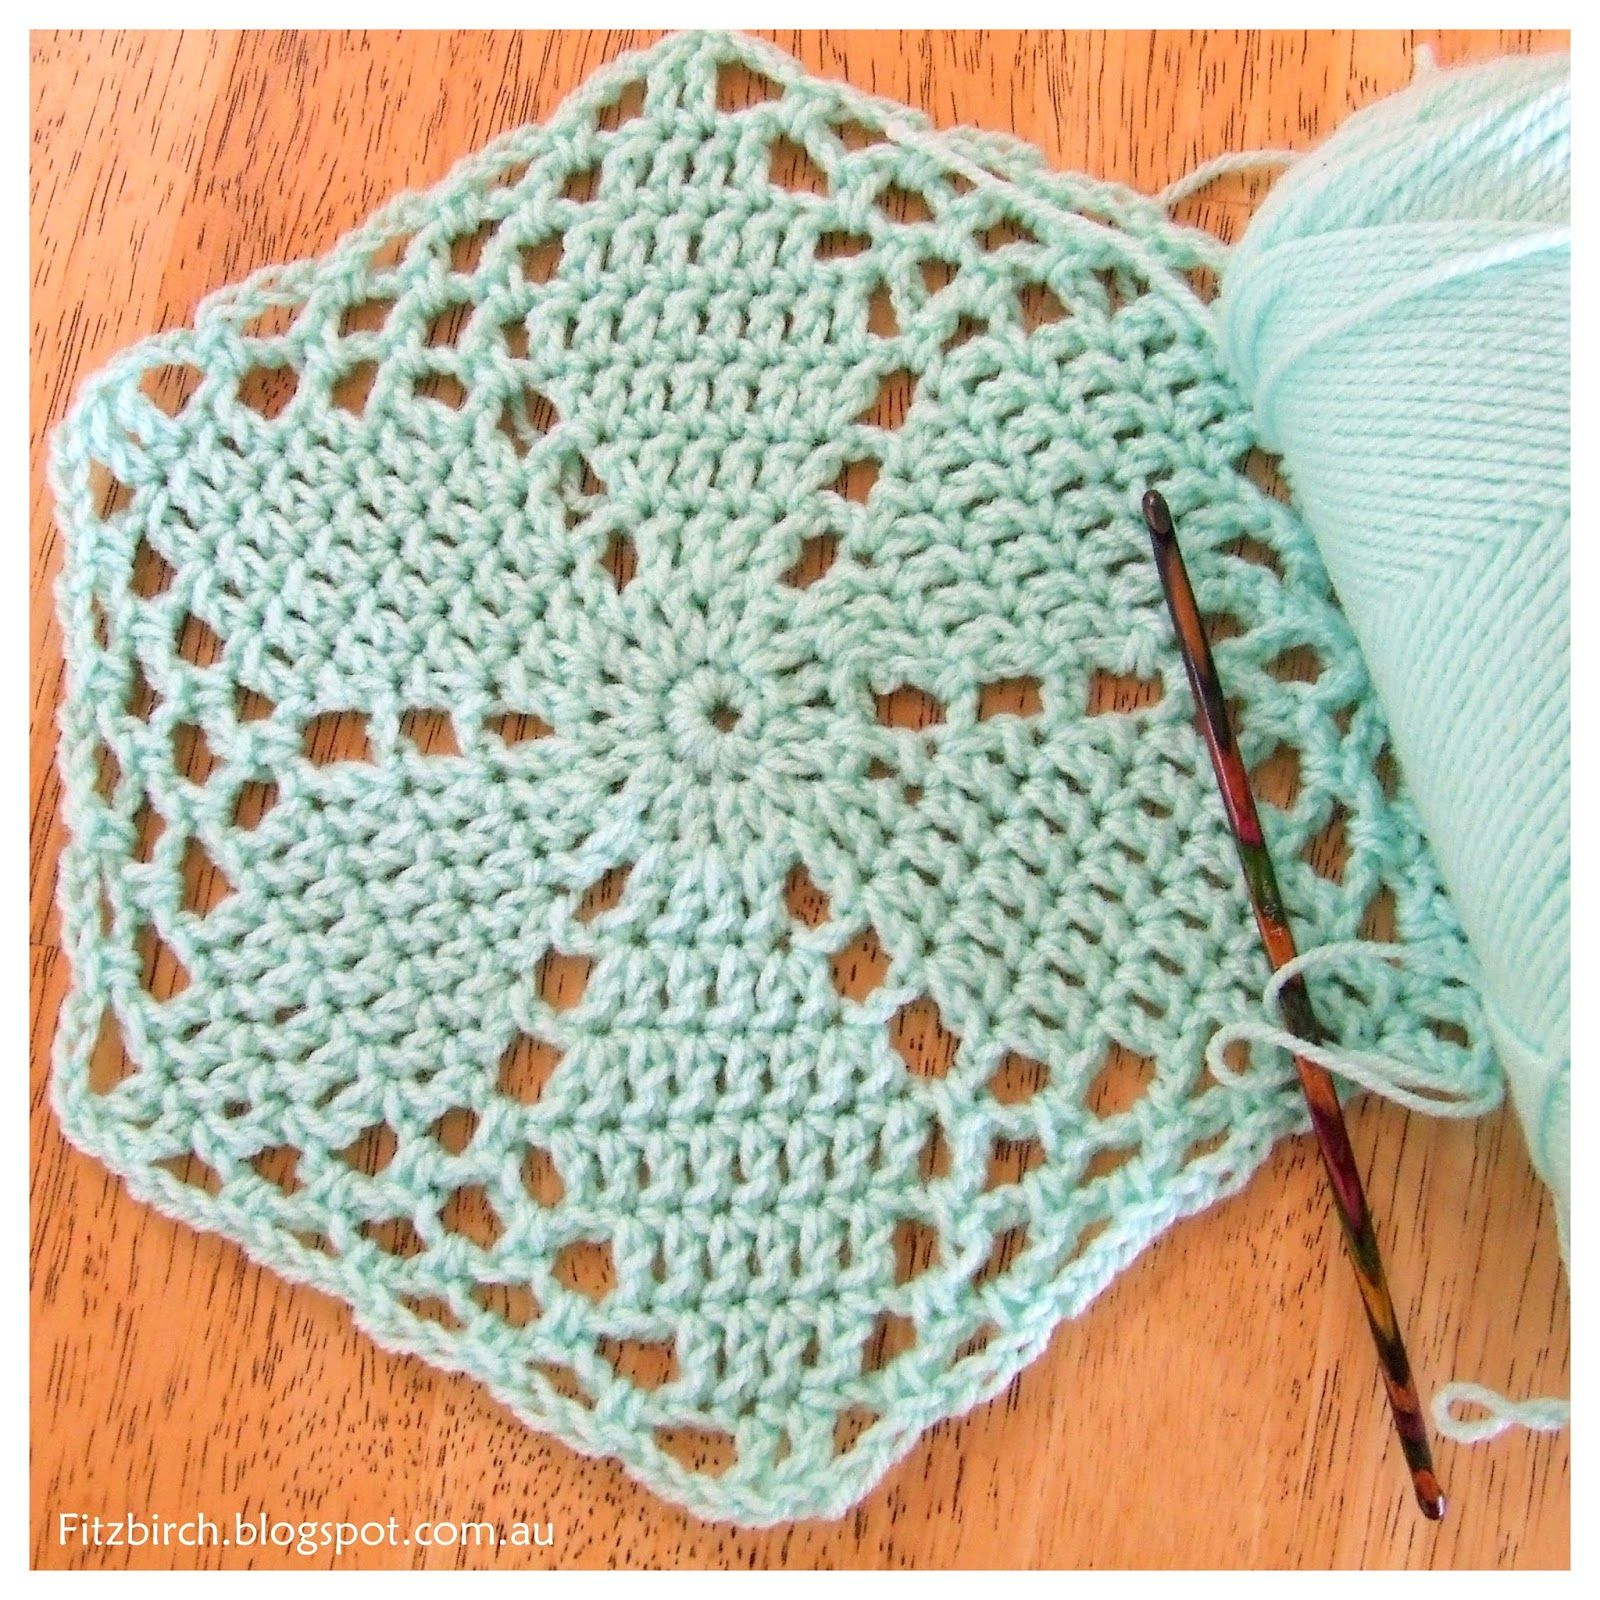 FitzBirch Crafts: Favourite Free Crochet Hexagon Patterns | crochet ...